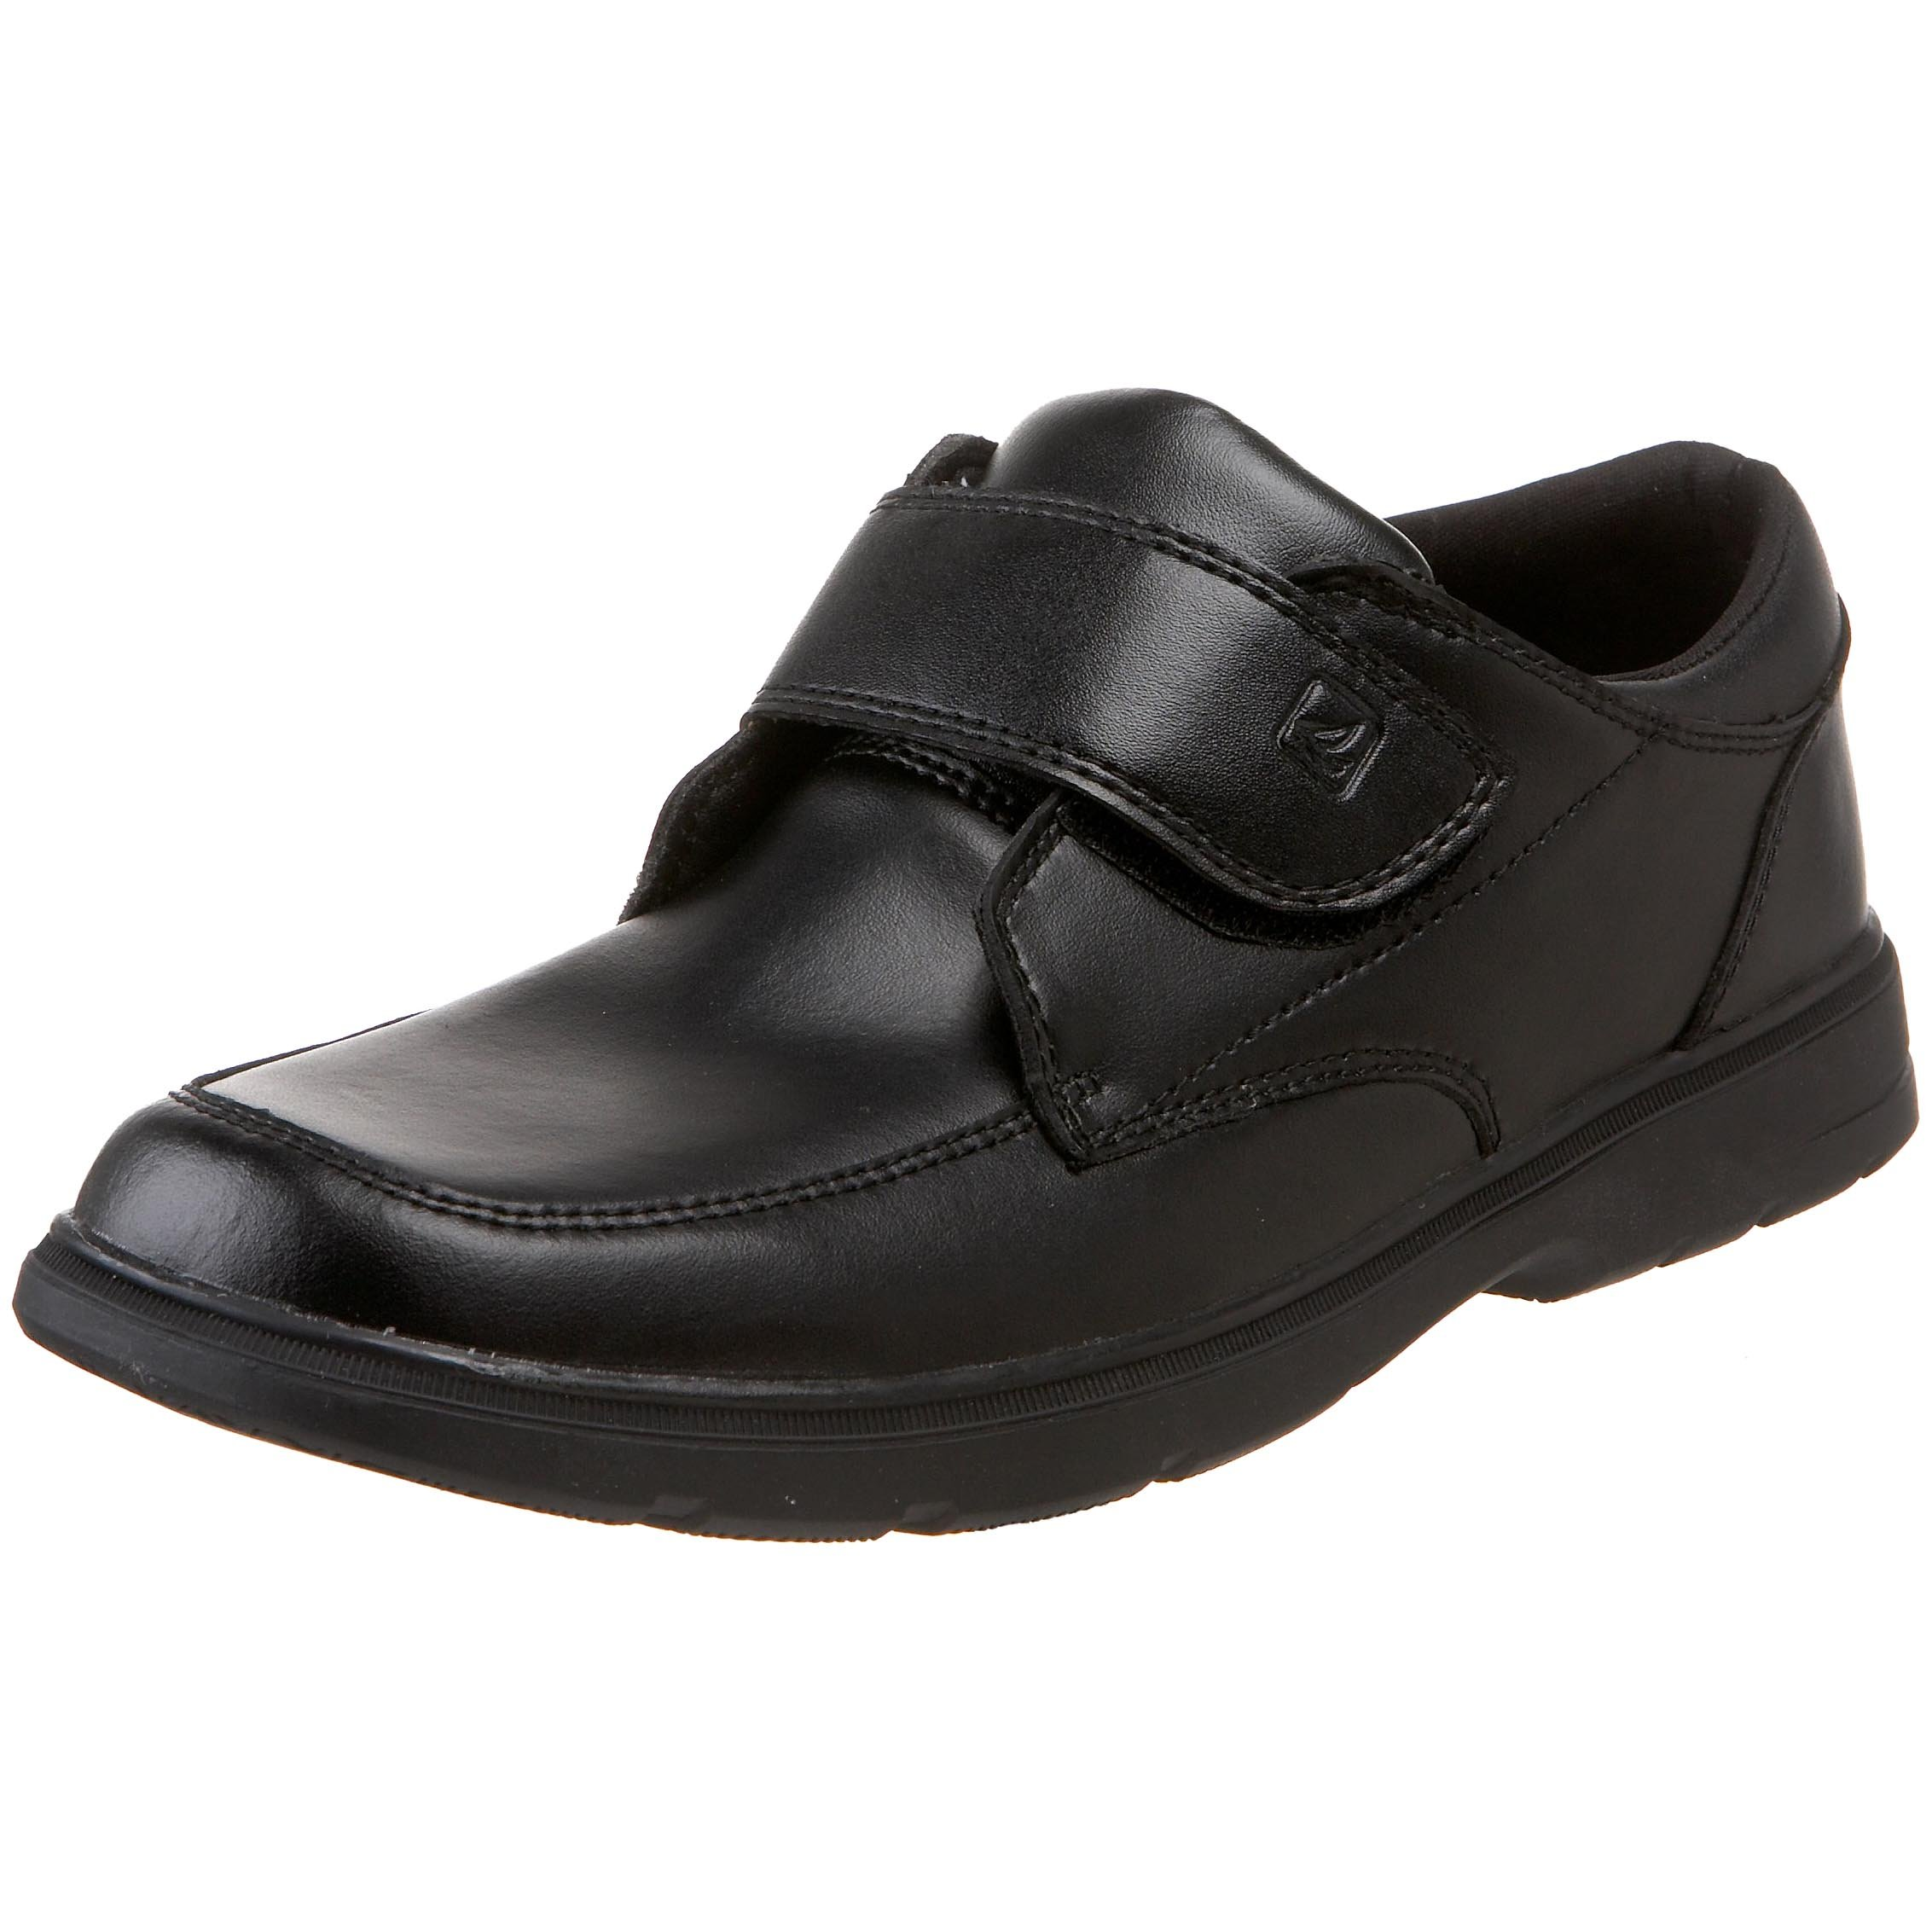 Sperry Top-Sider Miles Dress Shoe (Toddler/Little Kid/Big Kid),Black,5 M US Big Kid